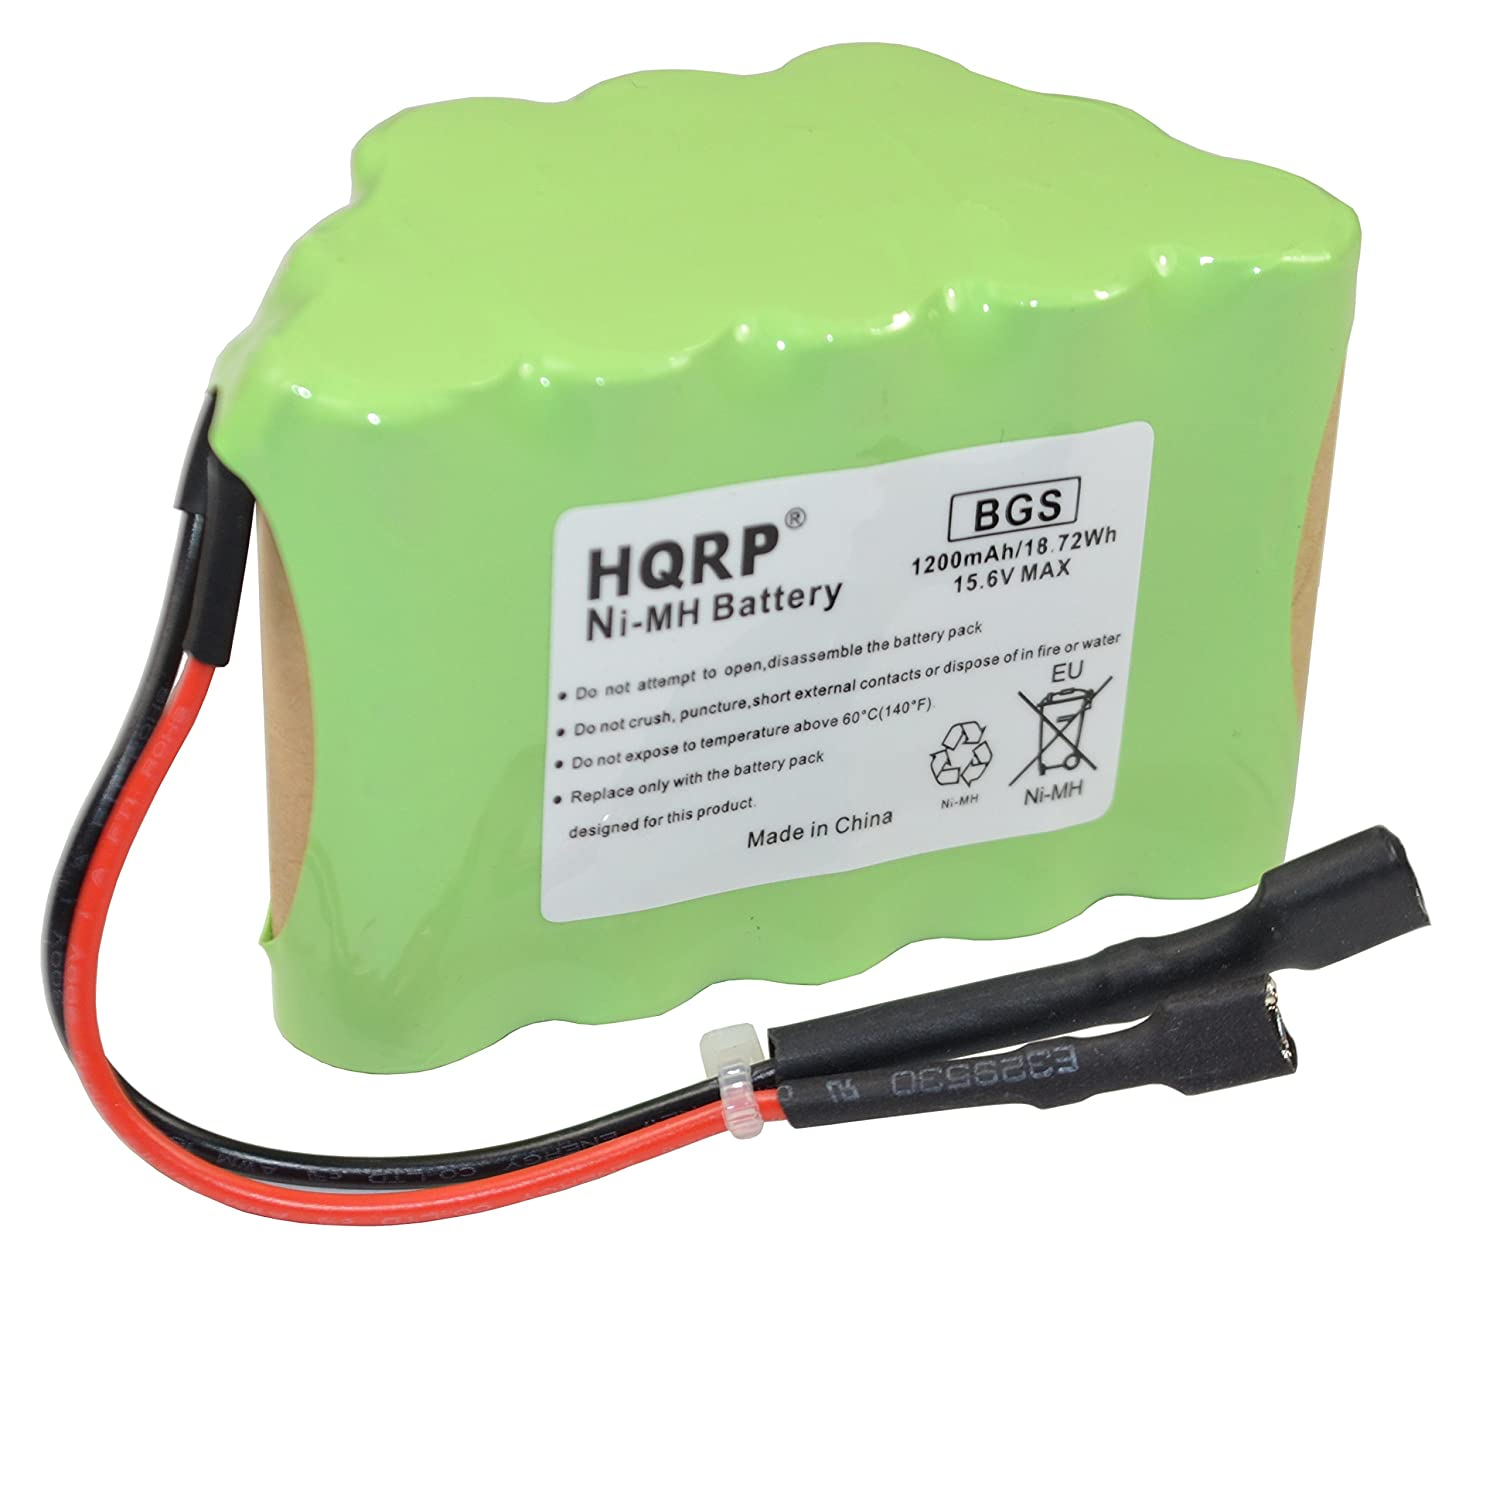 HQRP Battery for Shark XB75N SV75-N SV75Z-N SV75C-N SV75SP-N N-Series SV75_N, SV75Z_N, SV75SP_N, SV75N SV7514-N Cordless Pet Perfect Hand Vacuum Euro-Pro Shark-Ninja + Coaster